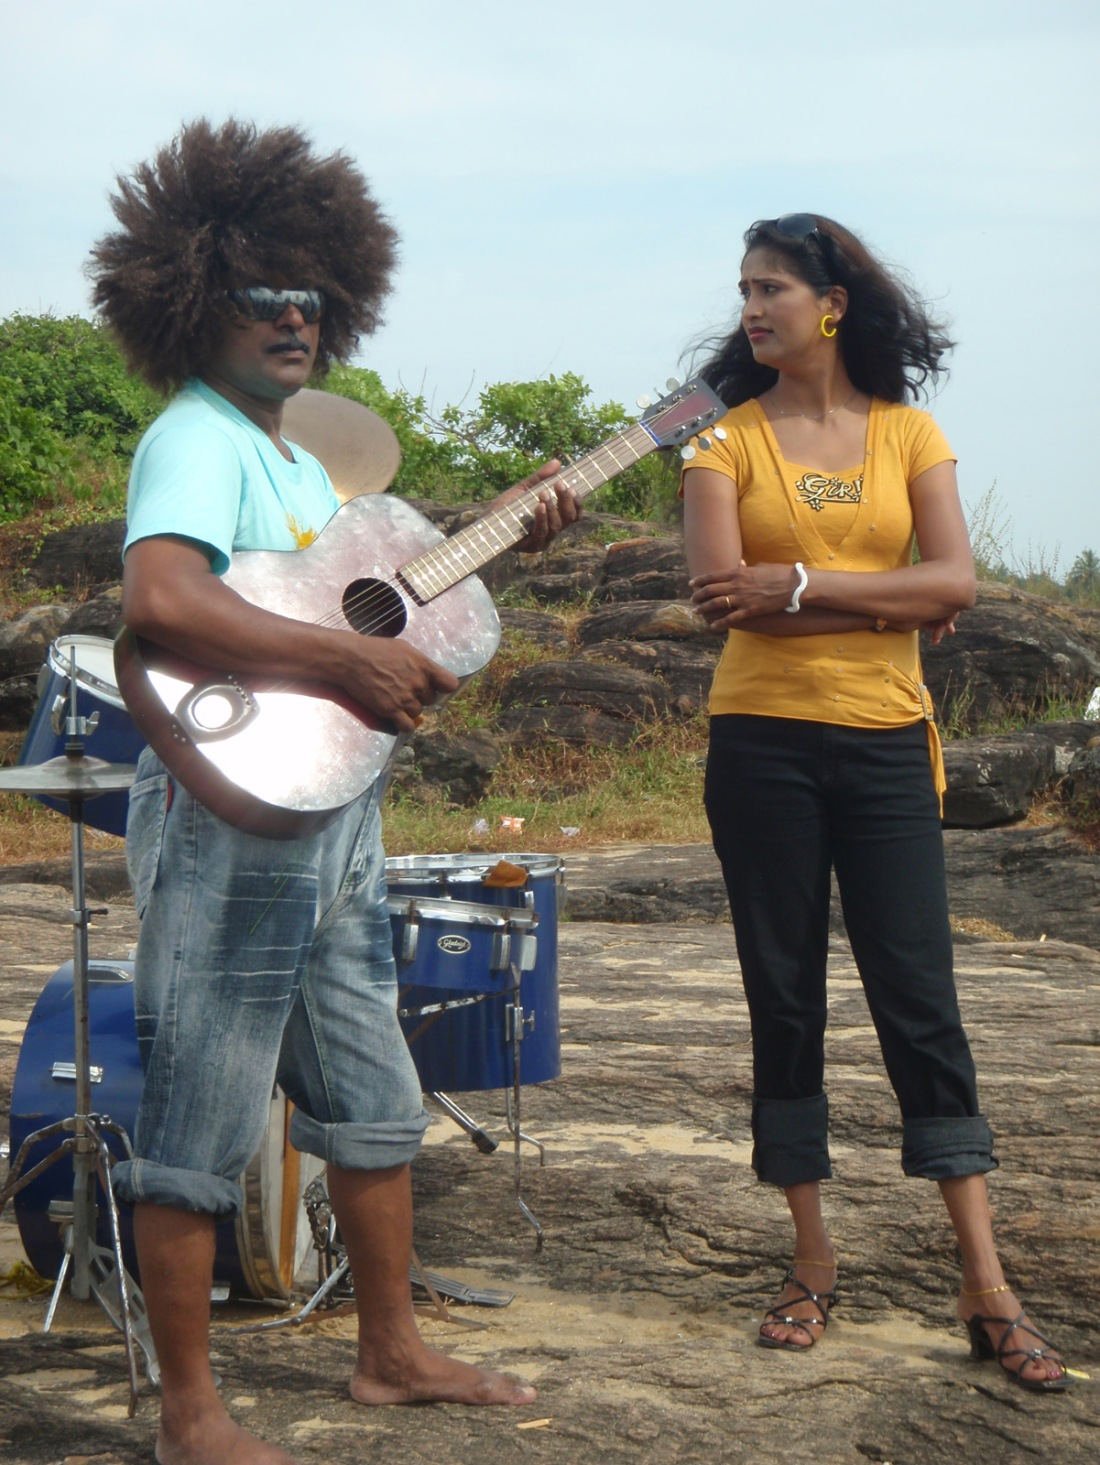 A Pop Video recording at Kappad Beach, Kerala, India